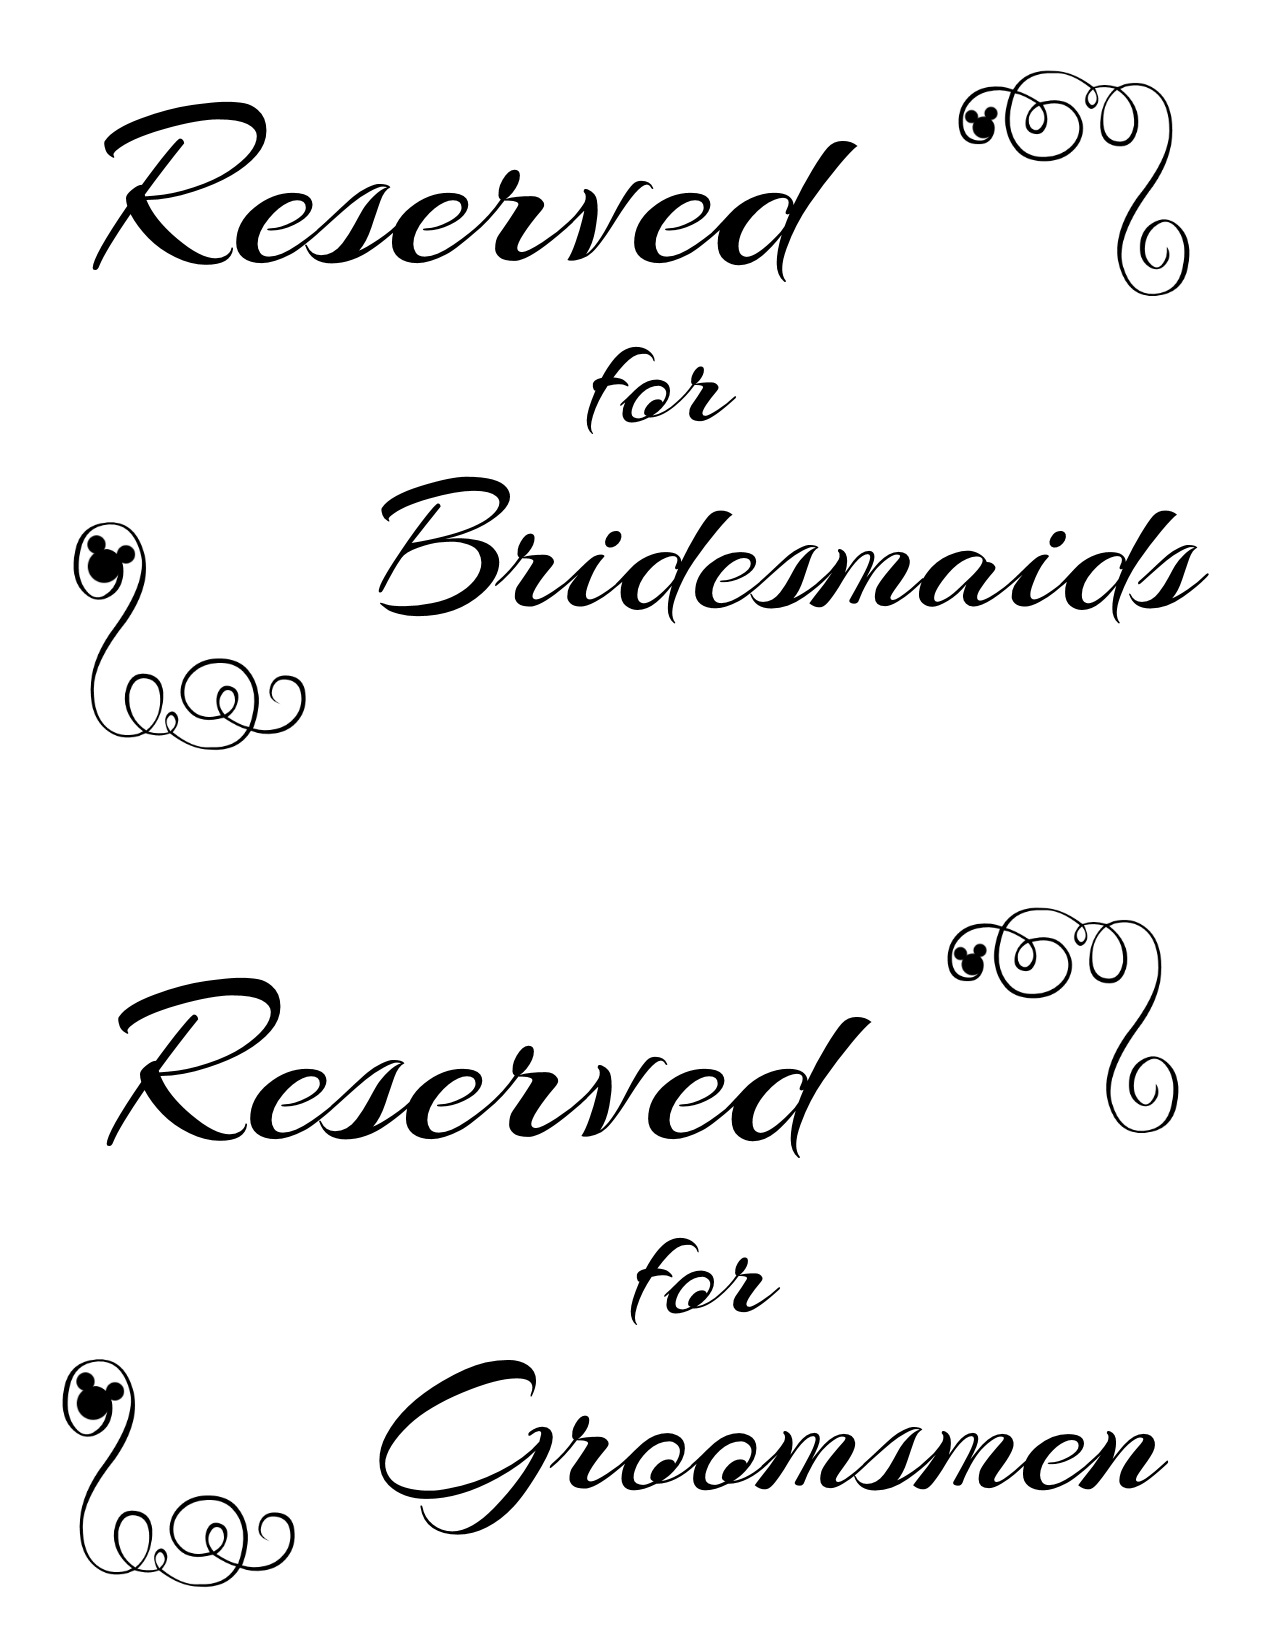 photograph about Free Printable Reserved Seating Signs called Absolutely free Printable Reserved Seating Indicators for Your Marriage ceremony Rite